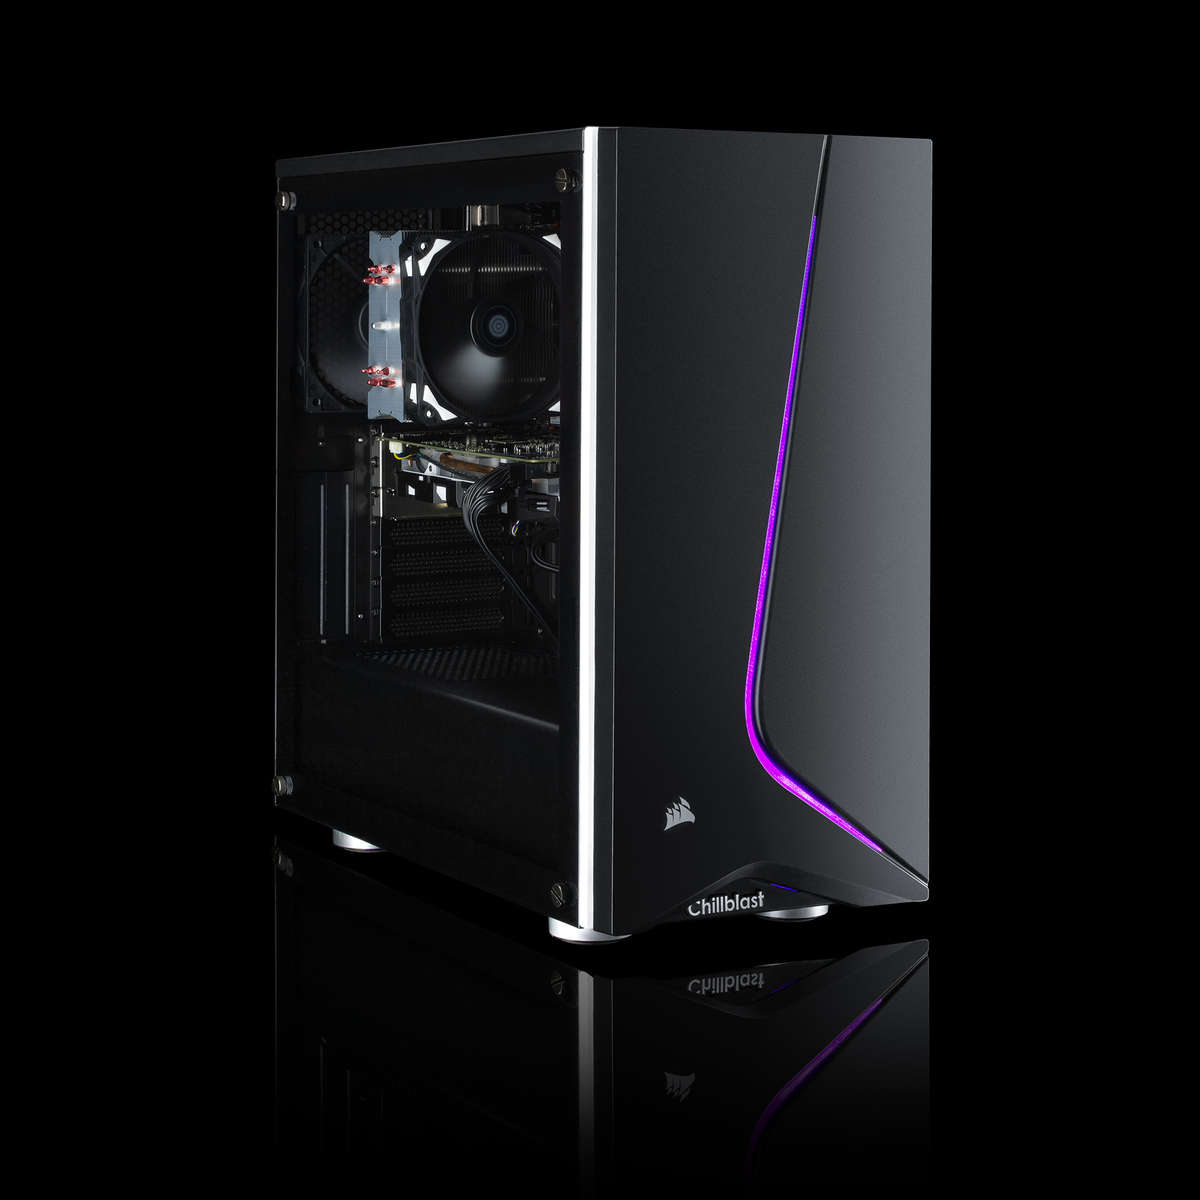 Chillblast Fusion Slingshot GTX 1660 Ti Gaming PC